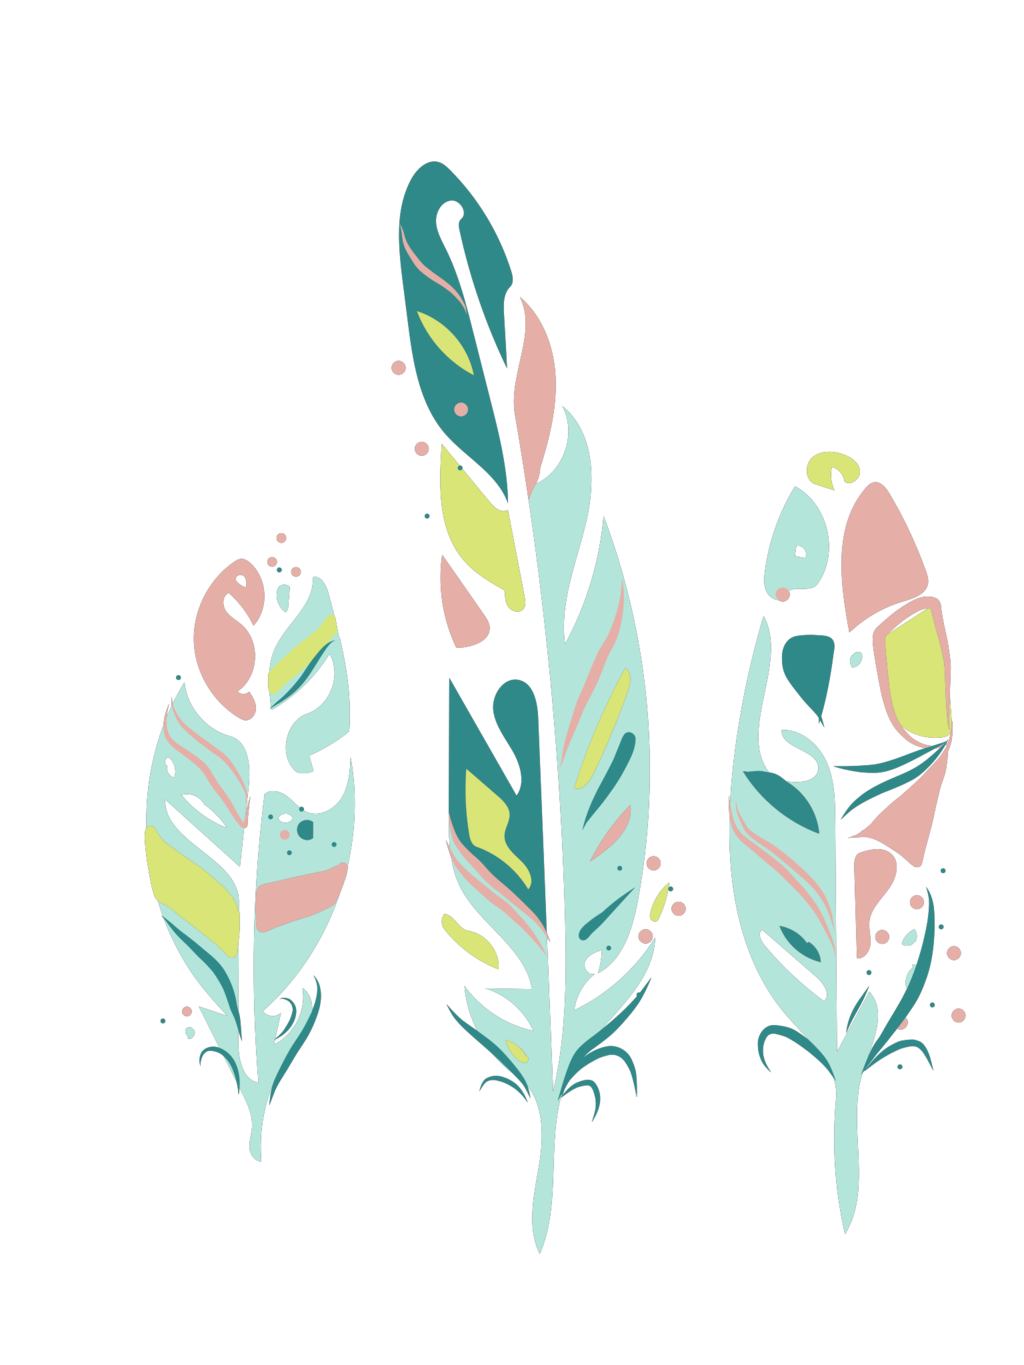 Arrow with three feathers clipart png transparent download Feather Boho-chic Drawing Clip art - boho 1024*1365 transprent Png ... png transparent download